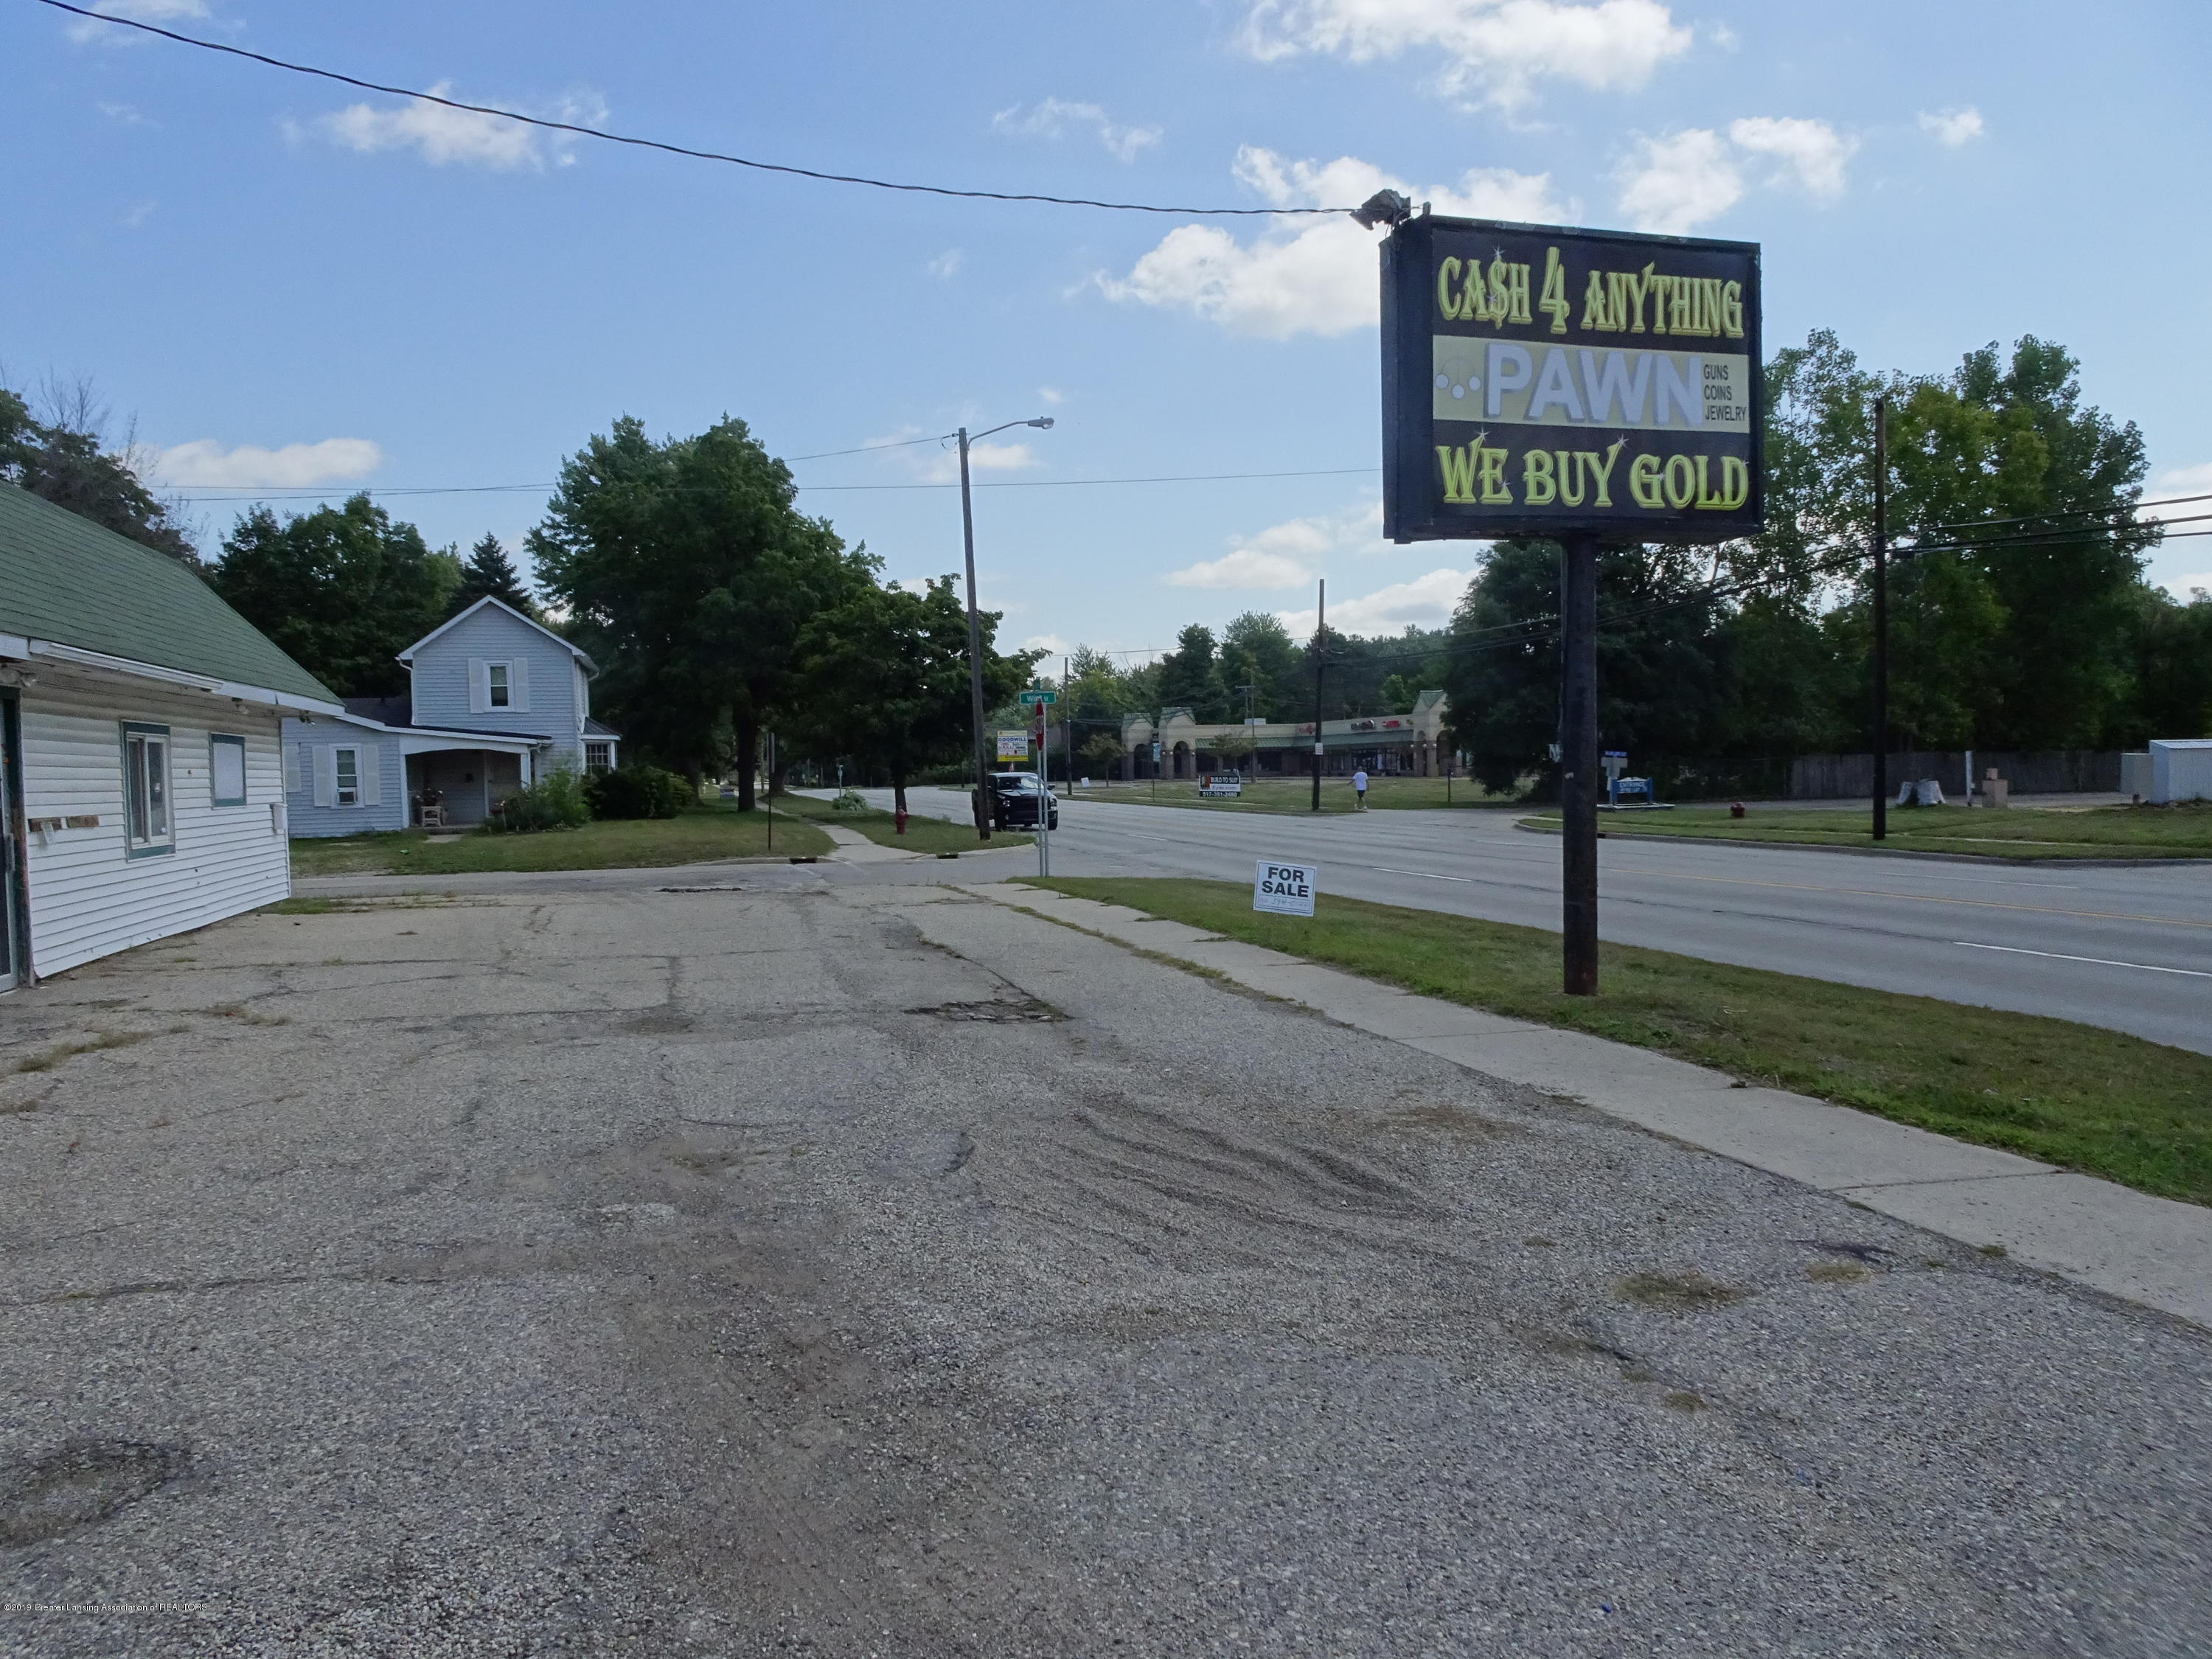 906 W Grand River Ave - Road View and Parking - 3